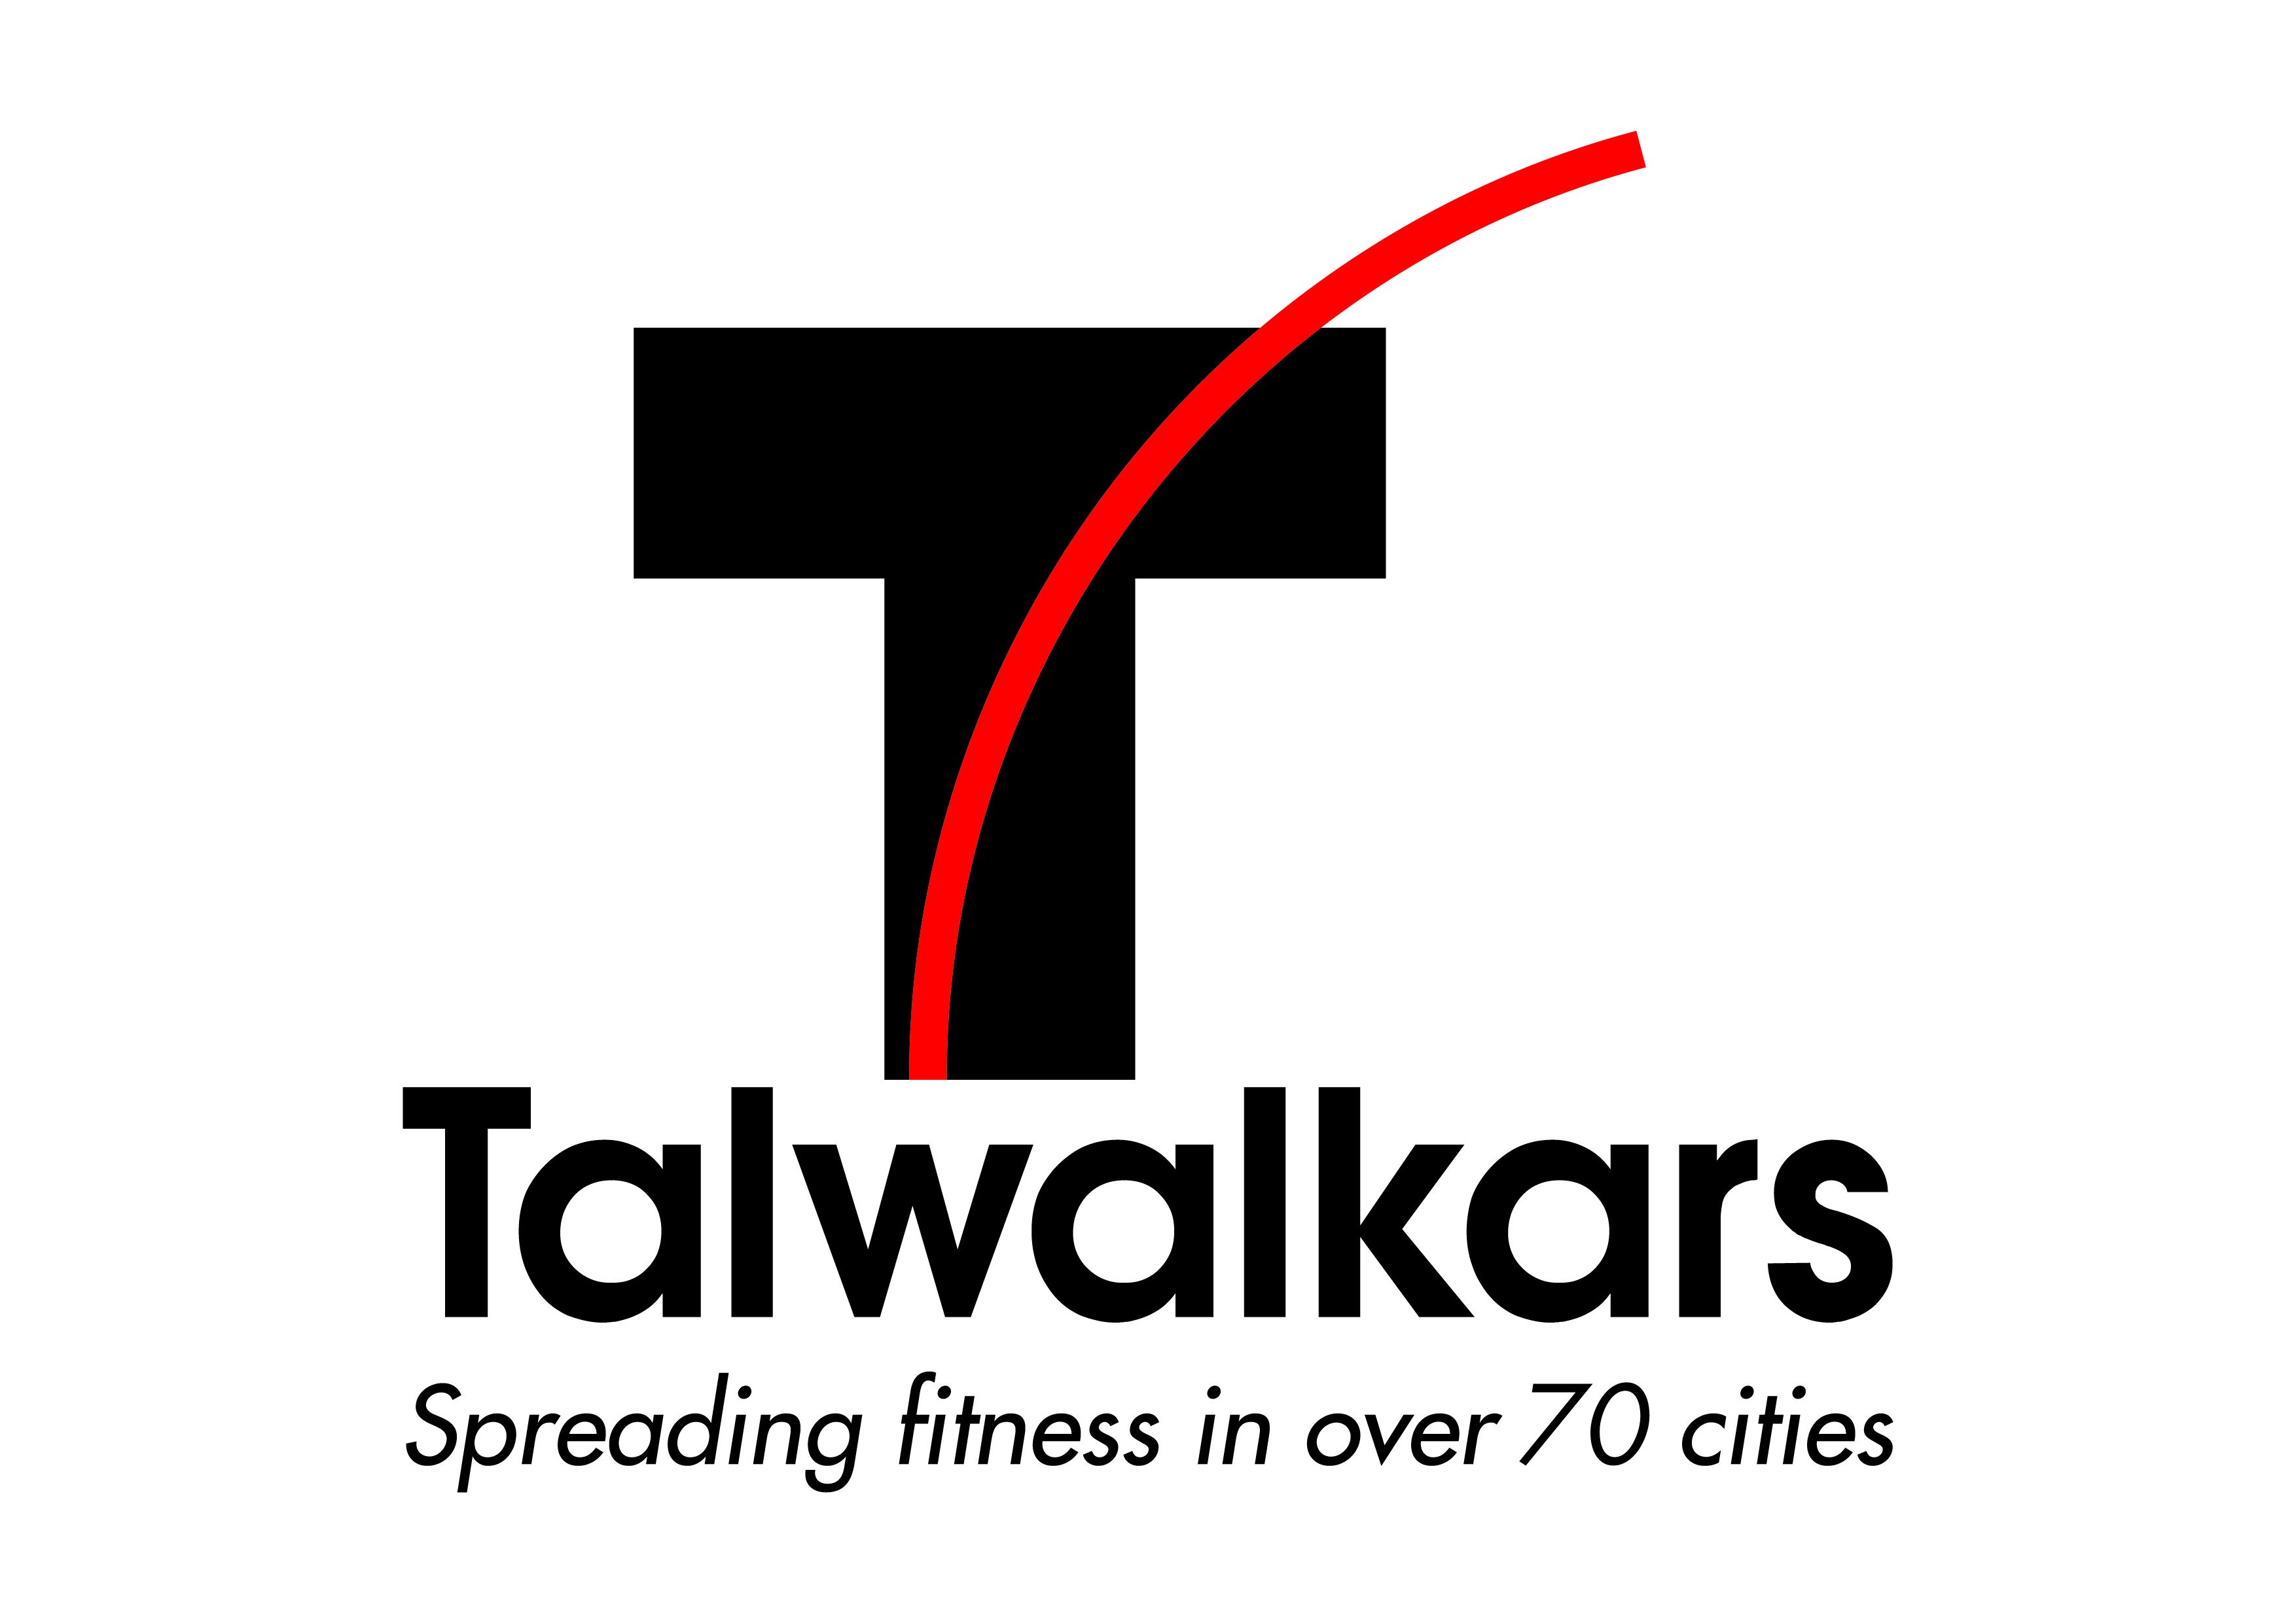 Talwalkars Gym Indore Photos Images And Wallpapers Mouthshut Com